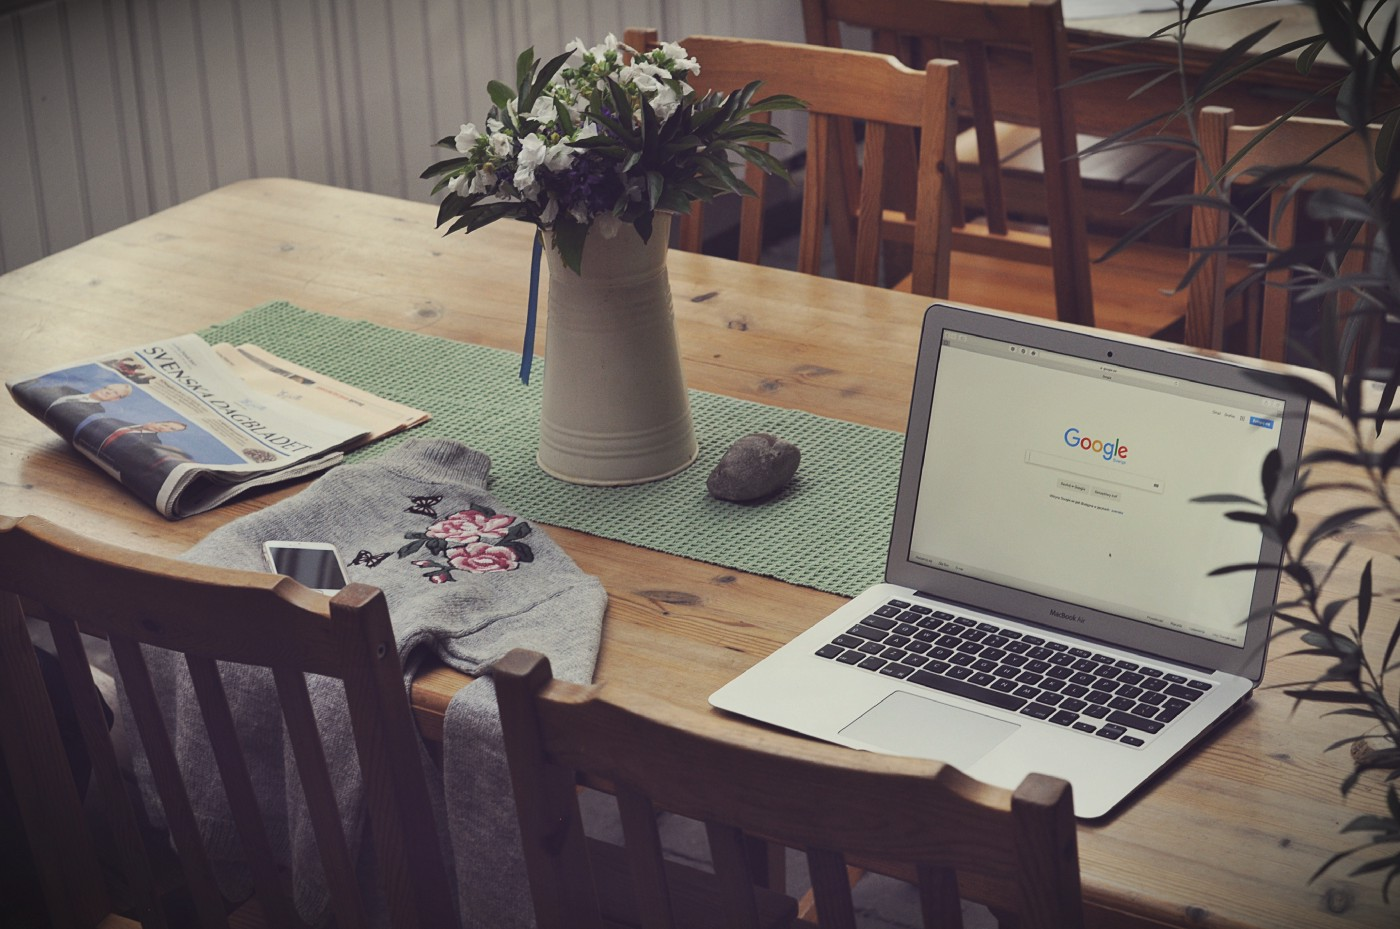 table with flowers, a newspaper, and a laptop with Chrome browser on its screen